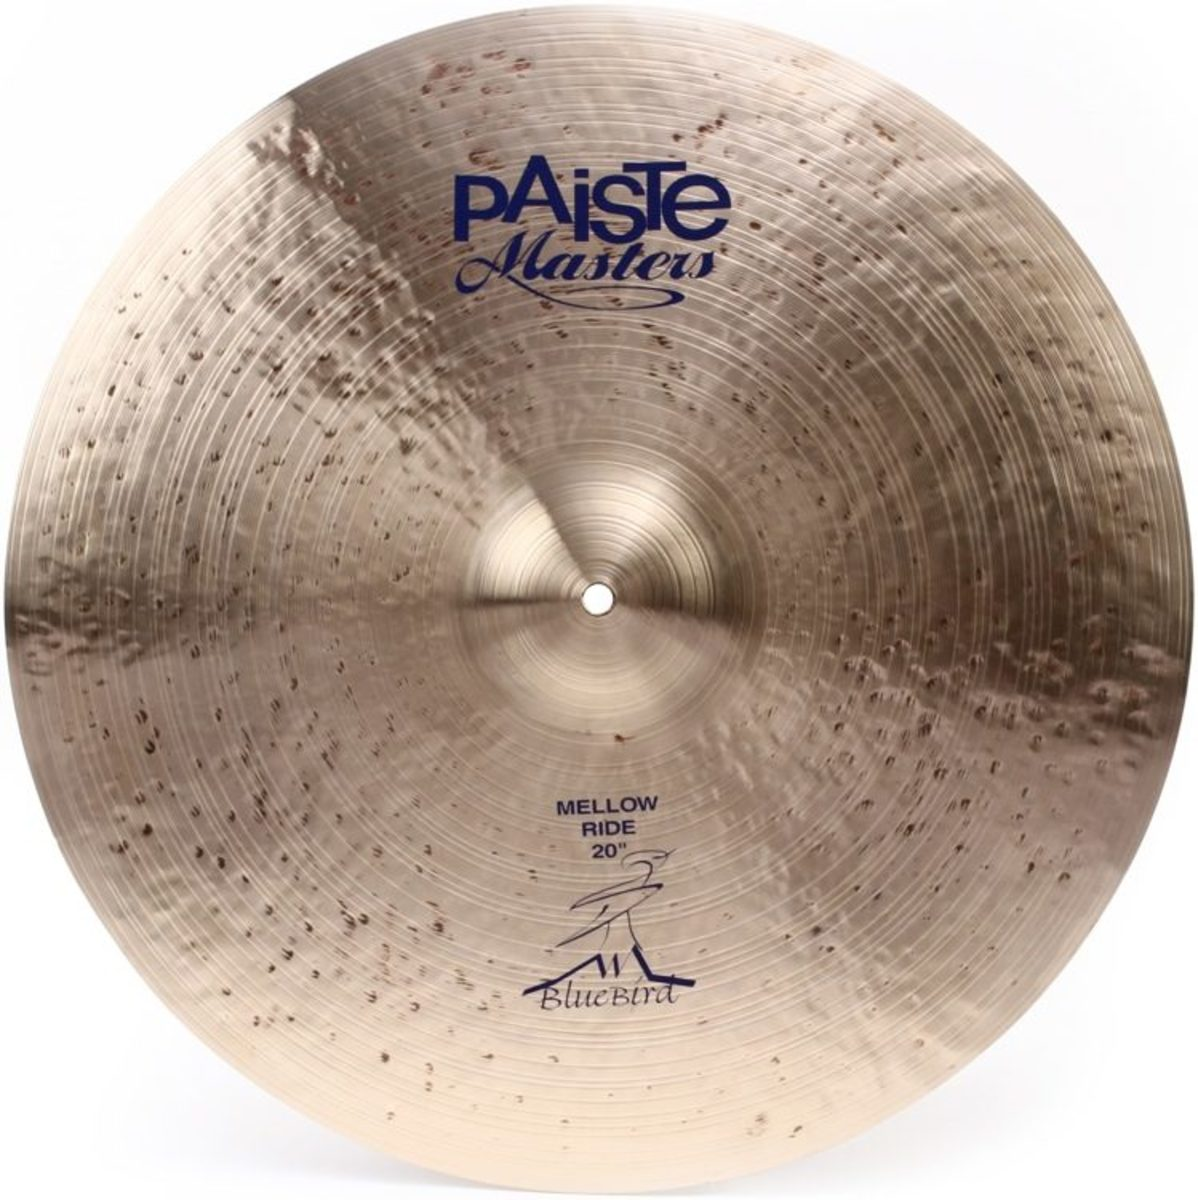 Top 10 Best Sounding Ride Cymbals For Jazz (In My Opinion